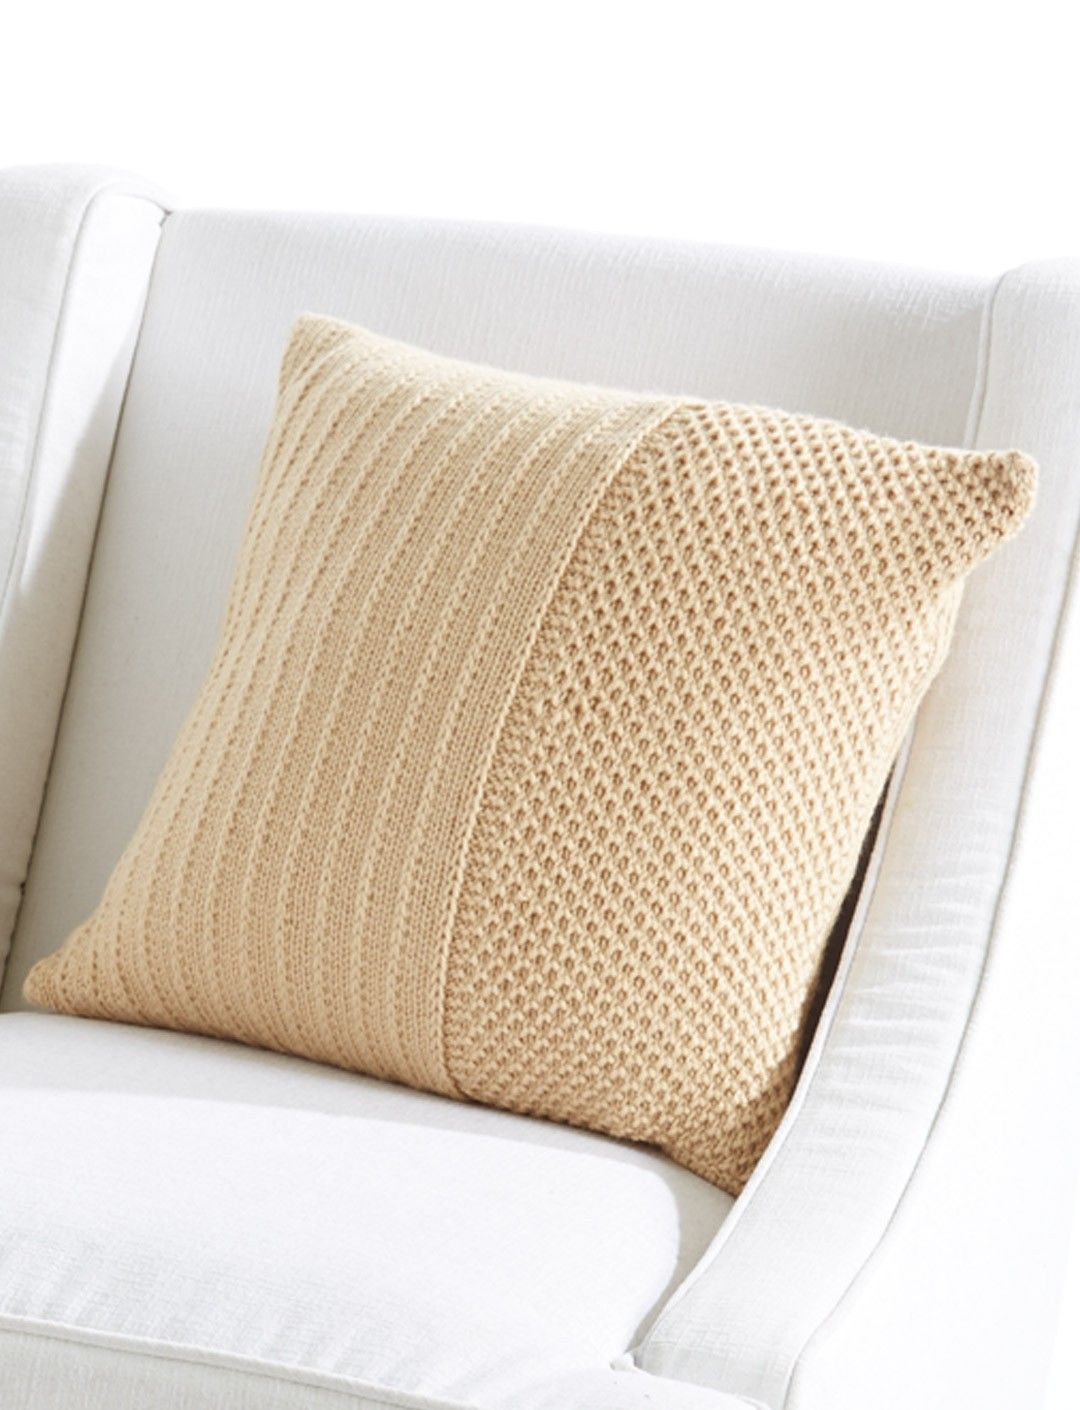 Classic textures pillow knit pattern free knit pillow patterns classic textures pillow knit pattern free bankloansurffo Choice Image